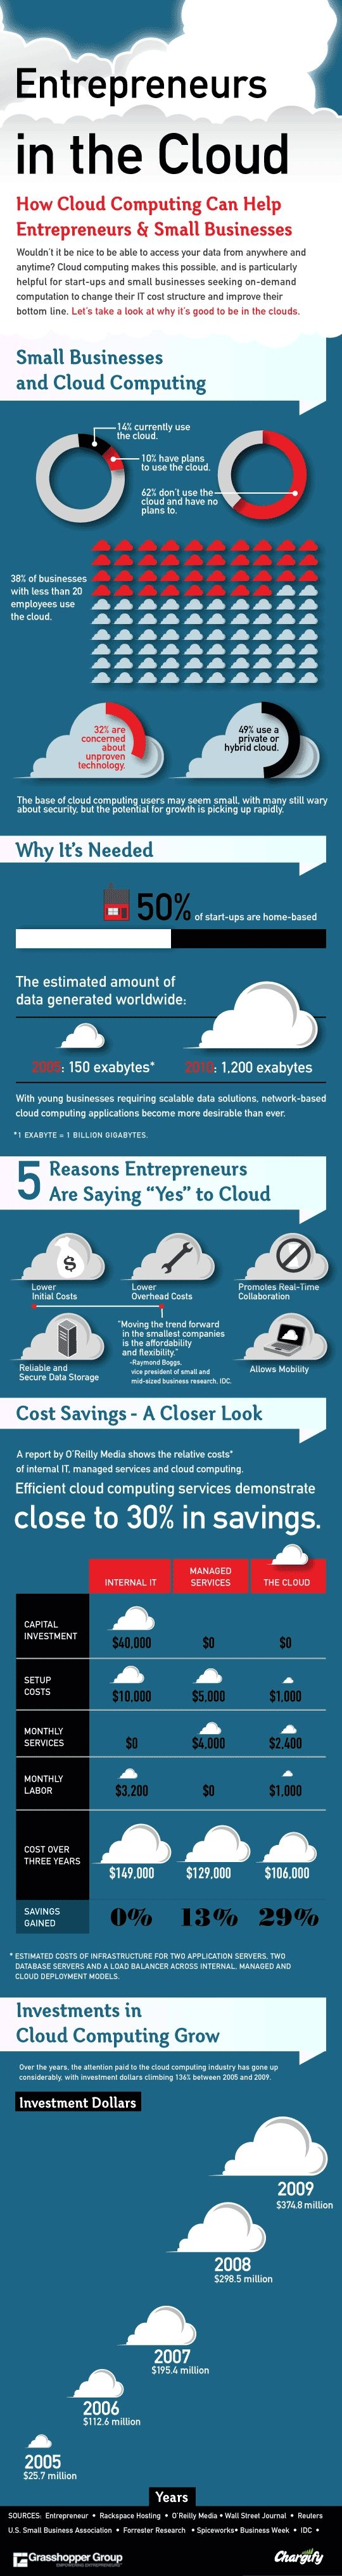 Yup. Running cloud applications can save a lot of money / preserve capital. Some interesting stats and what can we say we like info graphics.